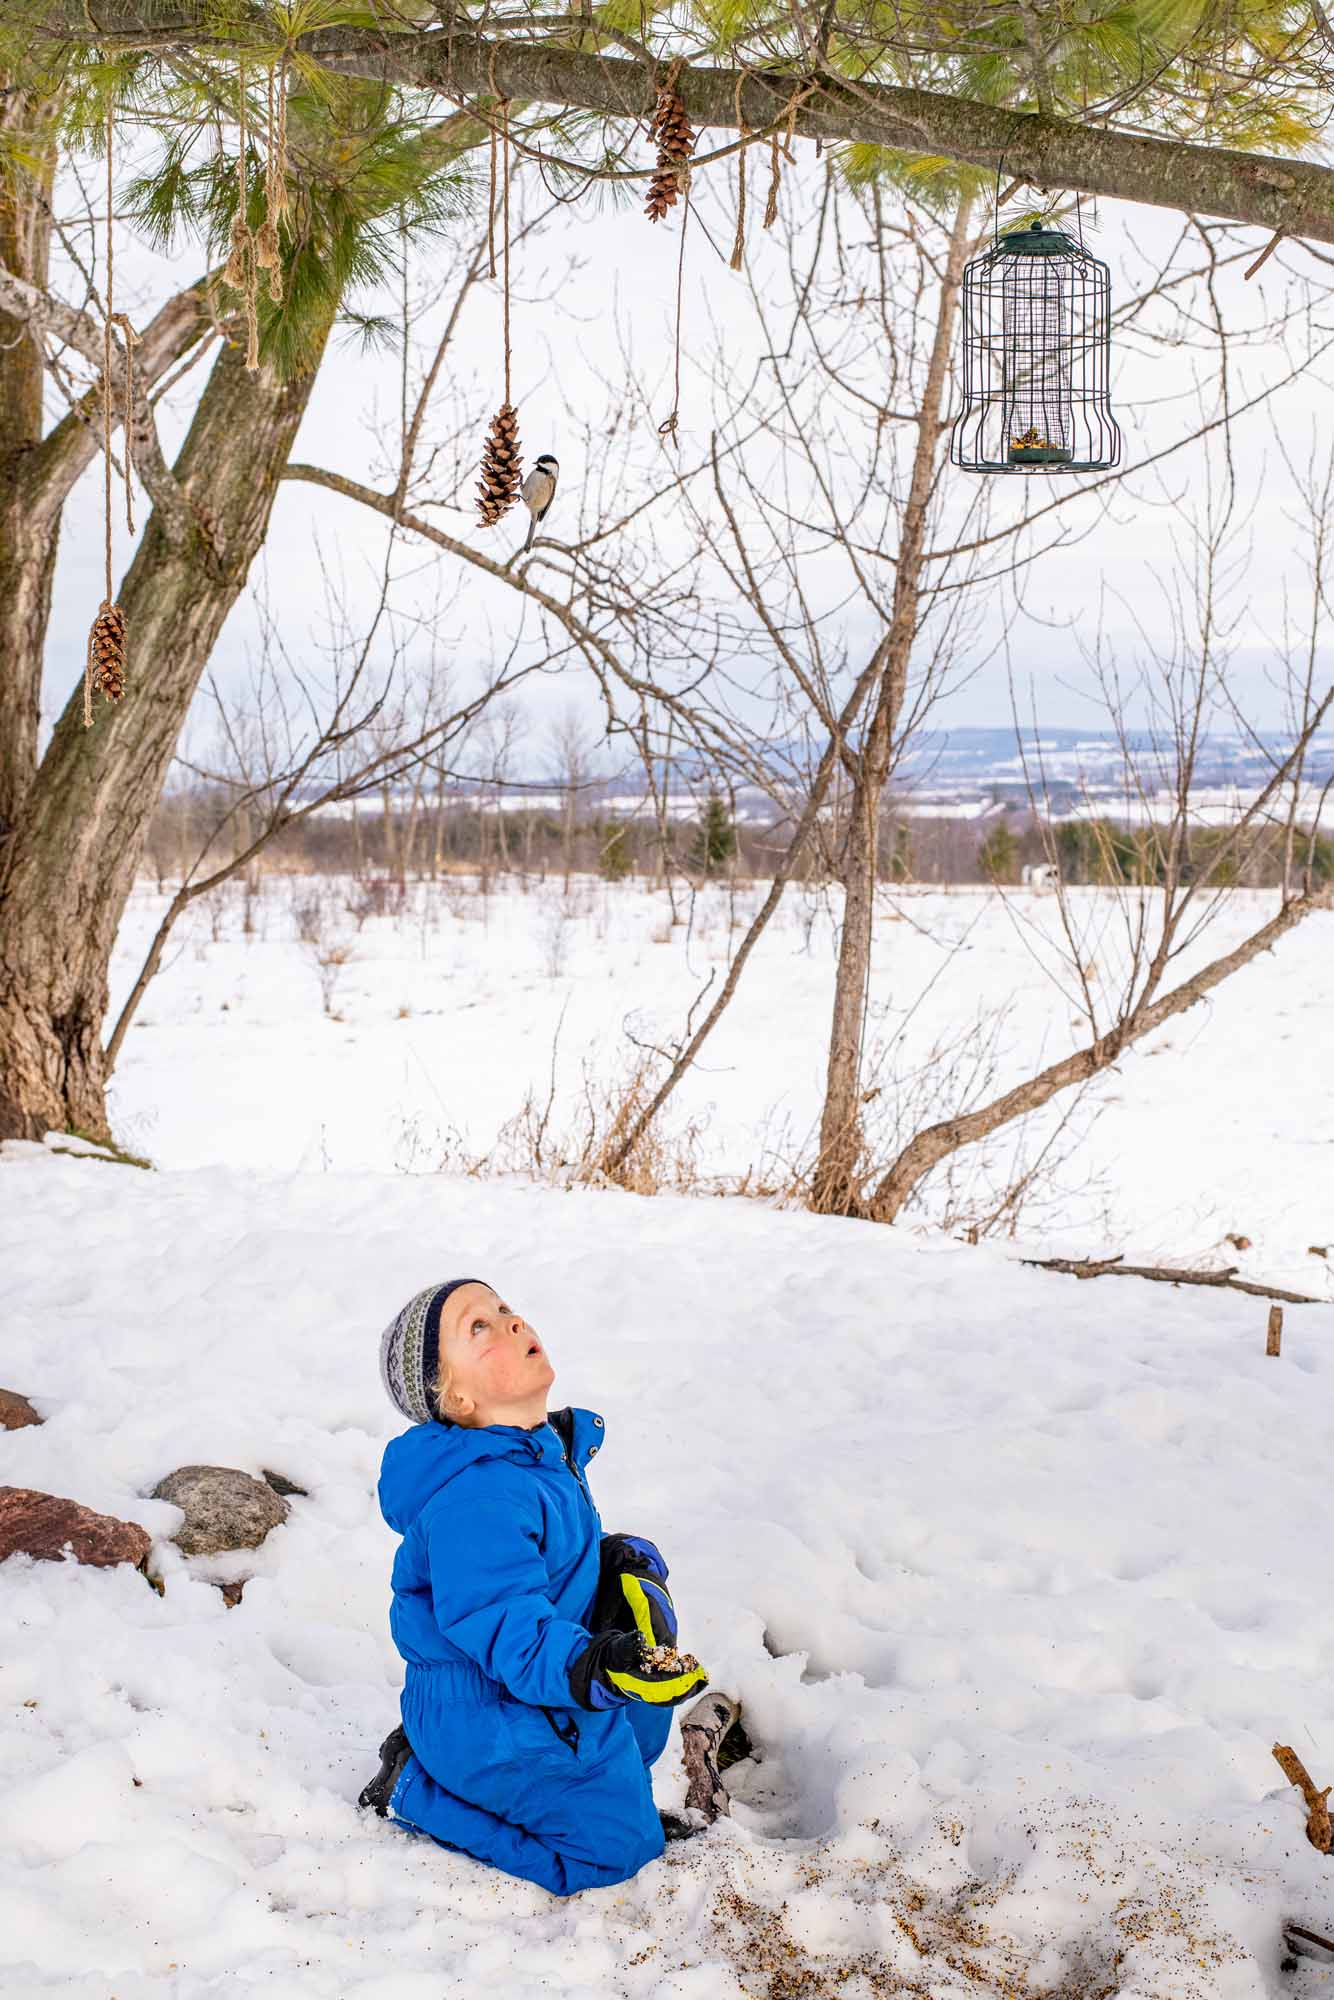 Nature-as-Teacher-Outdoor-Schools-Bring-Learning-Into-the-Elements-photo-by-Kristin-Schnelten-enticing-birds